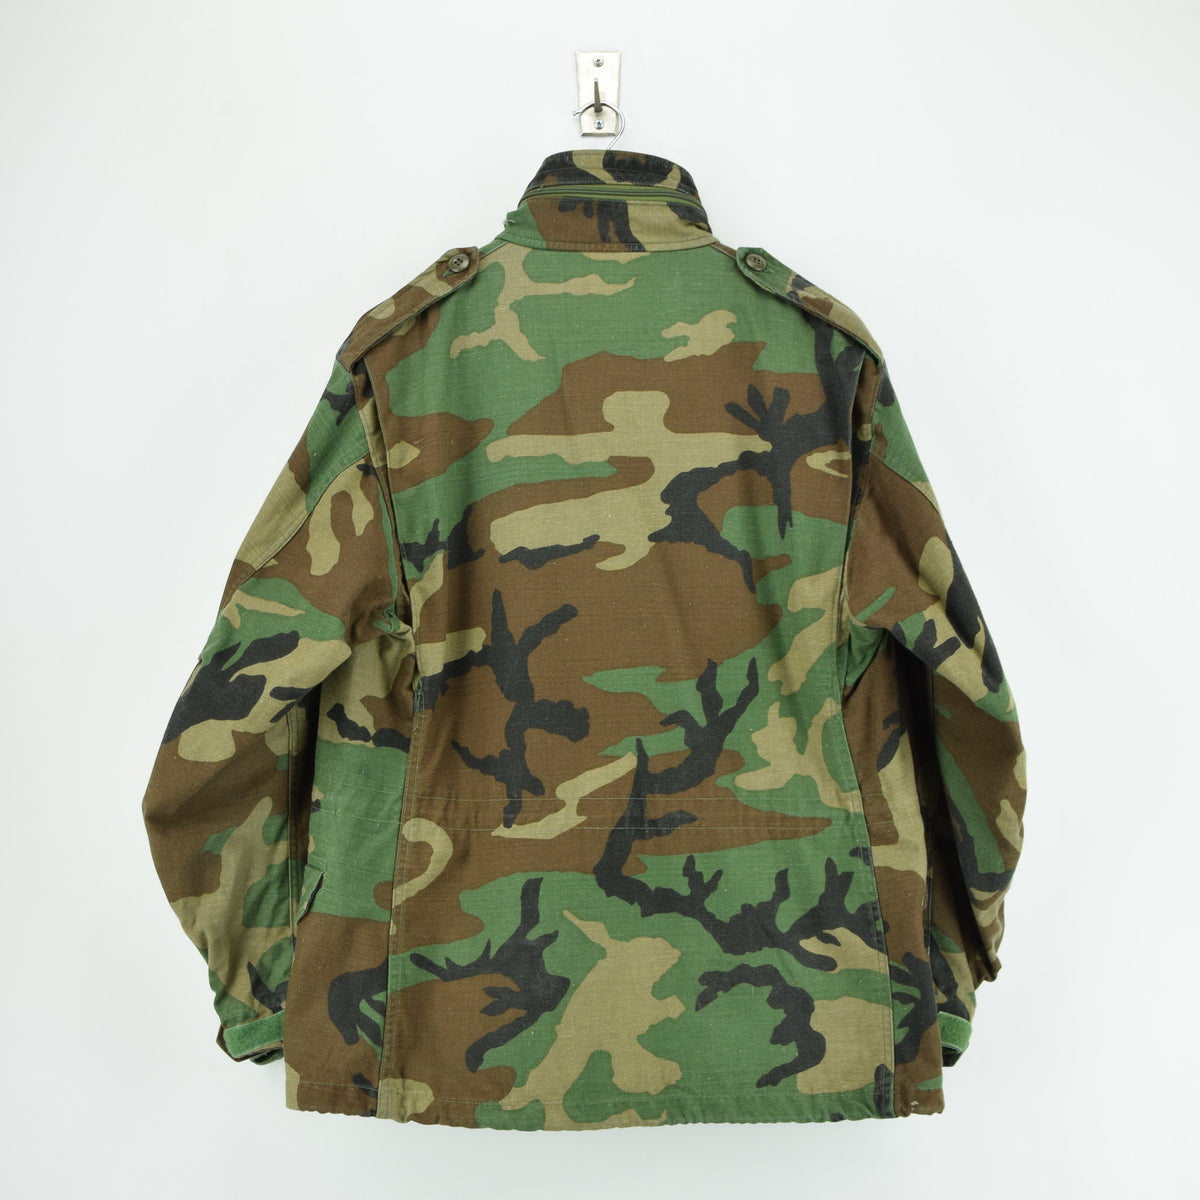 Vintage 80s M-65 Woodland Camouflage Field Coat Military US Air Force Jacket M back